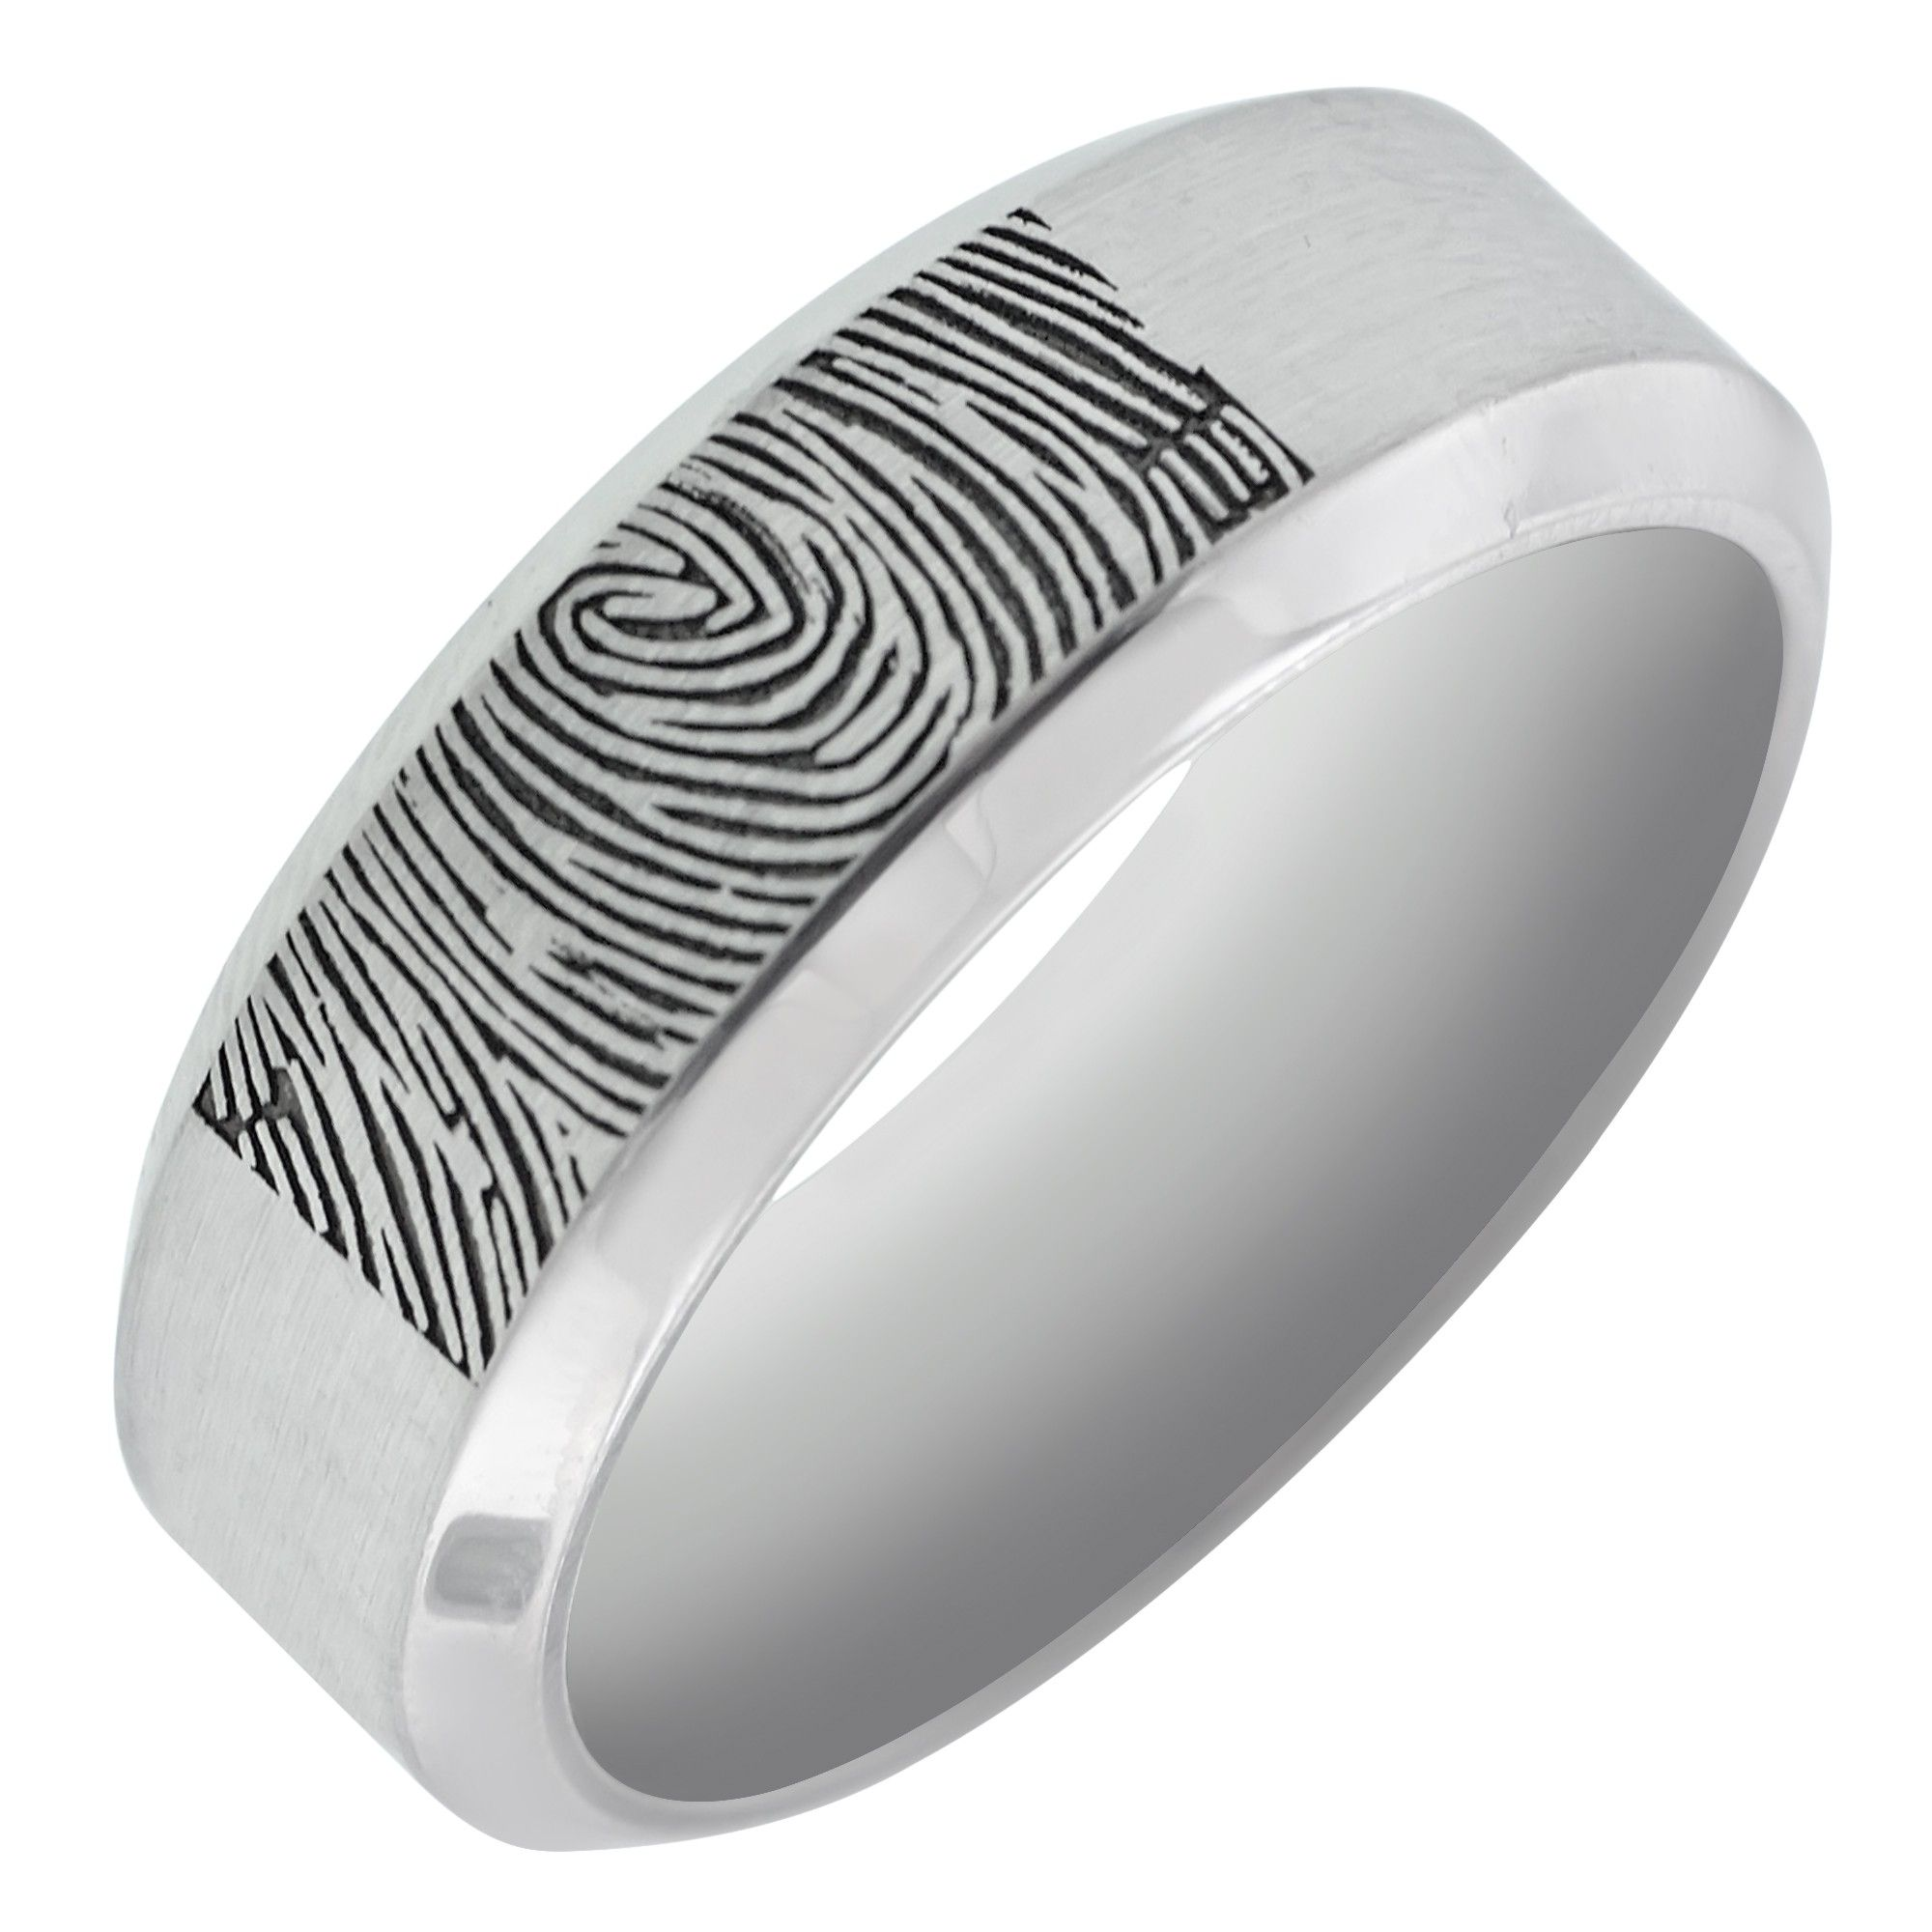 rings s ring mens fingerprint review awesome print custom seller with wedding wife personalised wifes finger unique lovemark of inspirational best